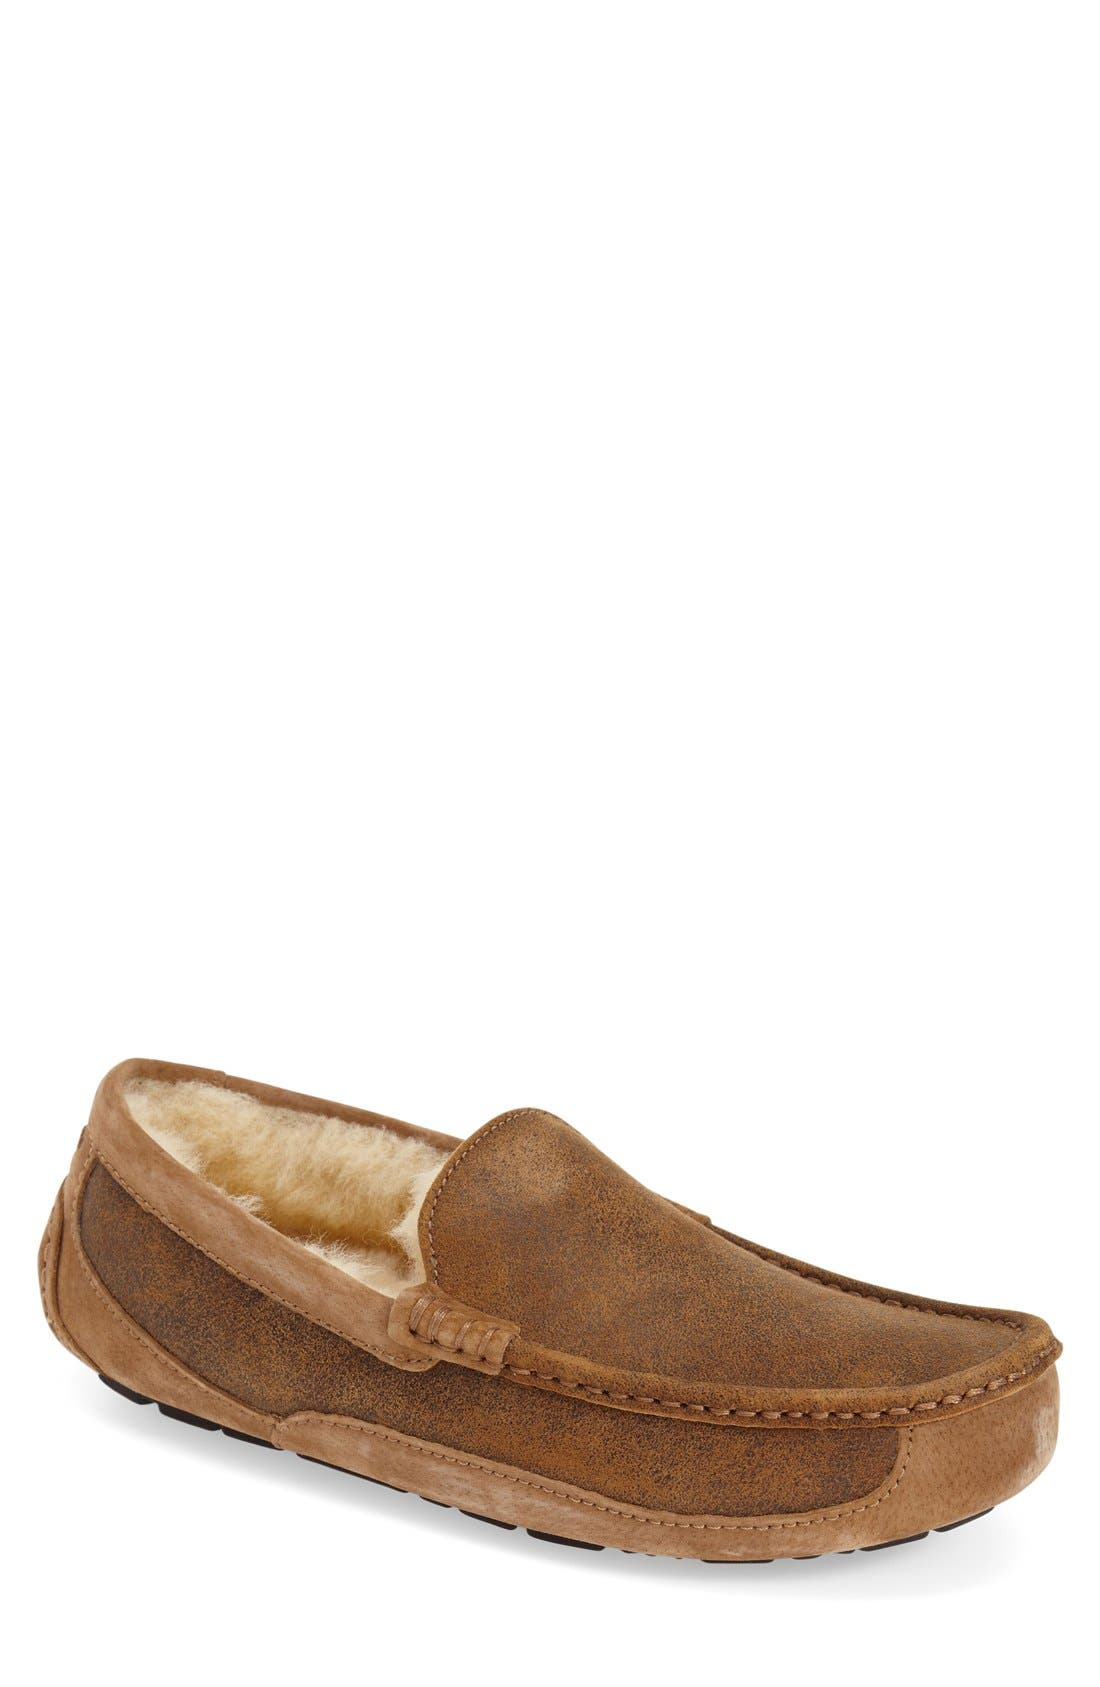 Alternate Image 1 Selected - UGG® Ascot Bomber Slipper (Men)